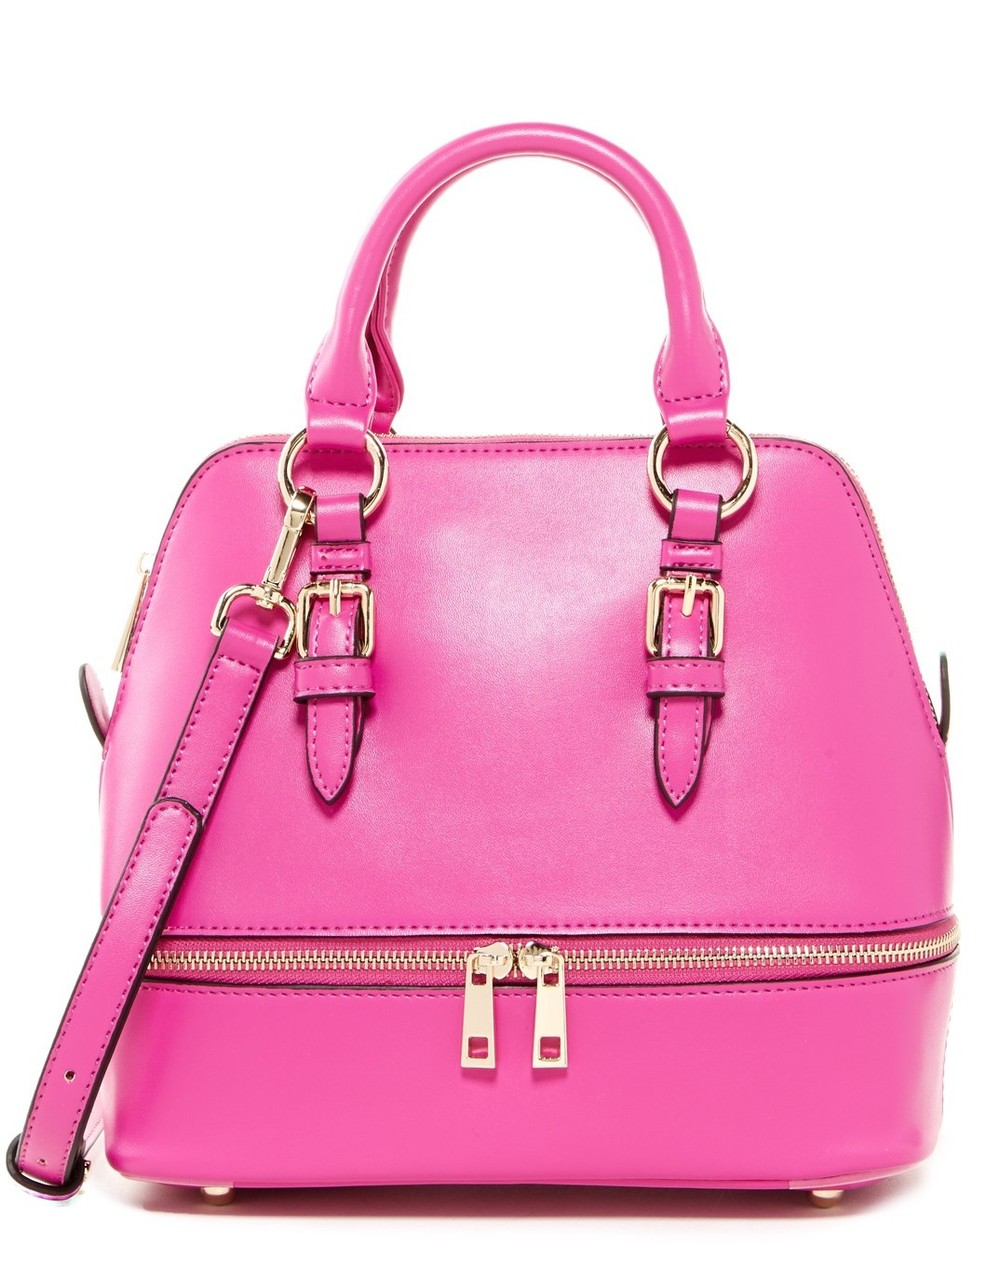 Sondra Roberts Small Bowler Satchel in Pink (also available in yellow and black), $50 at    NordstromRack.com   .